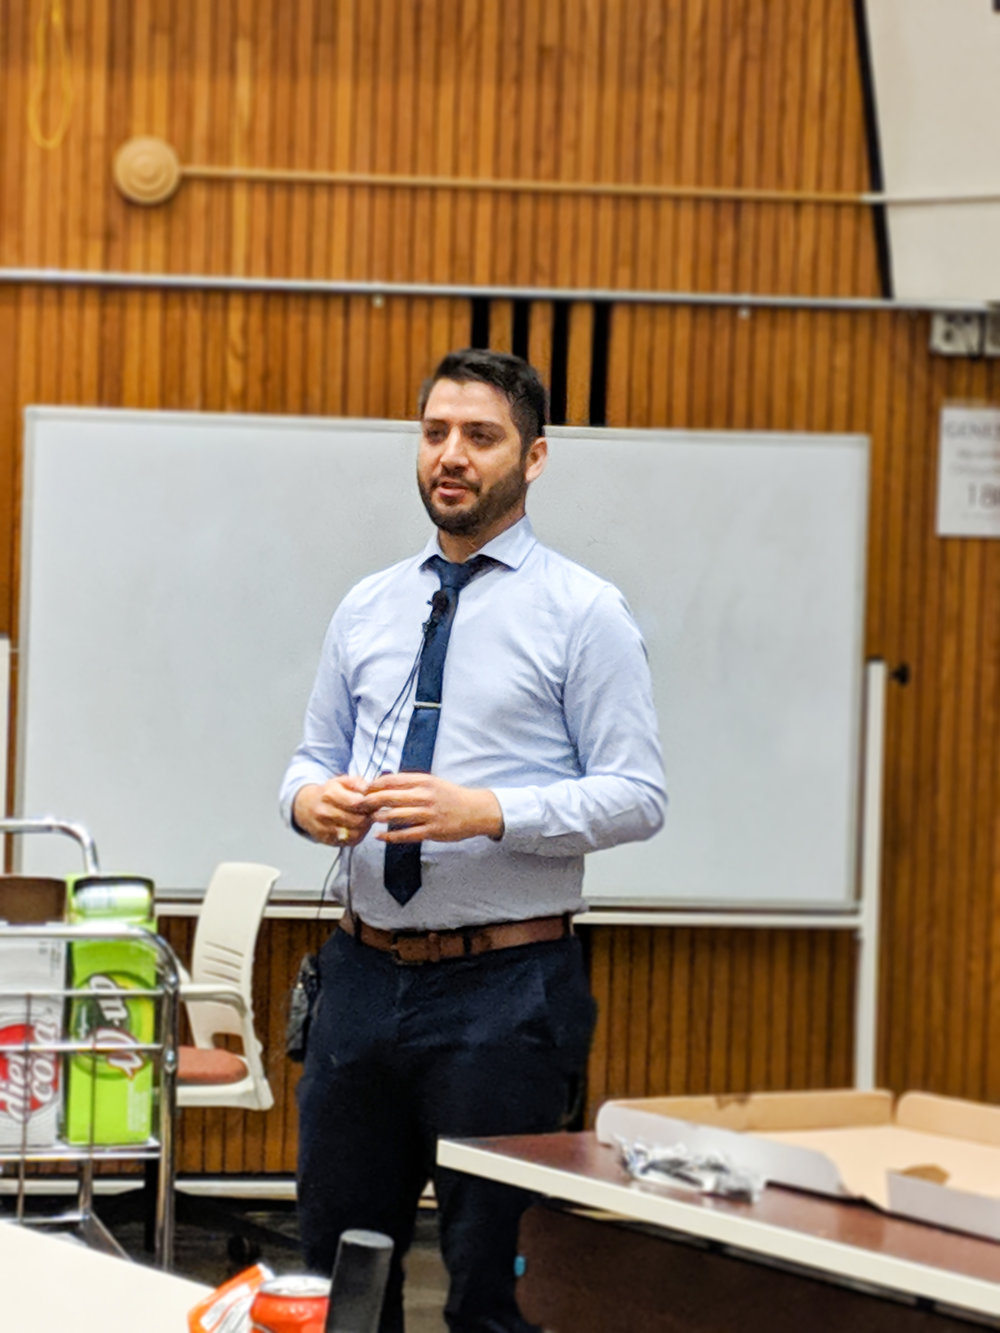 Steven Villanueva (pictured above) talked to Geneseo students about his career path and the obstacles he faced along the way On Thursday Nov. 1. The event was a part of Geneseo Reaching out to Women and Underrepresented Groups in Science, Technology, Engineering and Math (courtesy of anne pellerin).